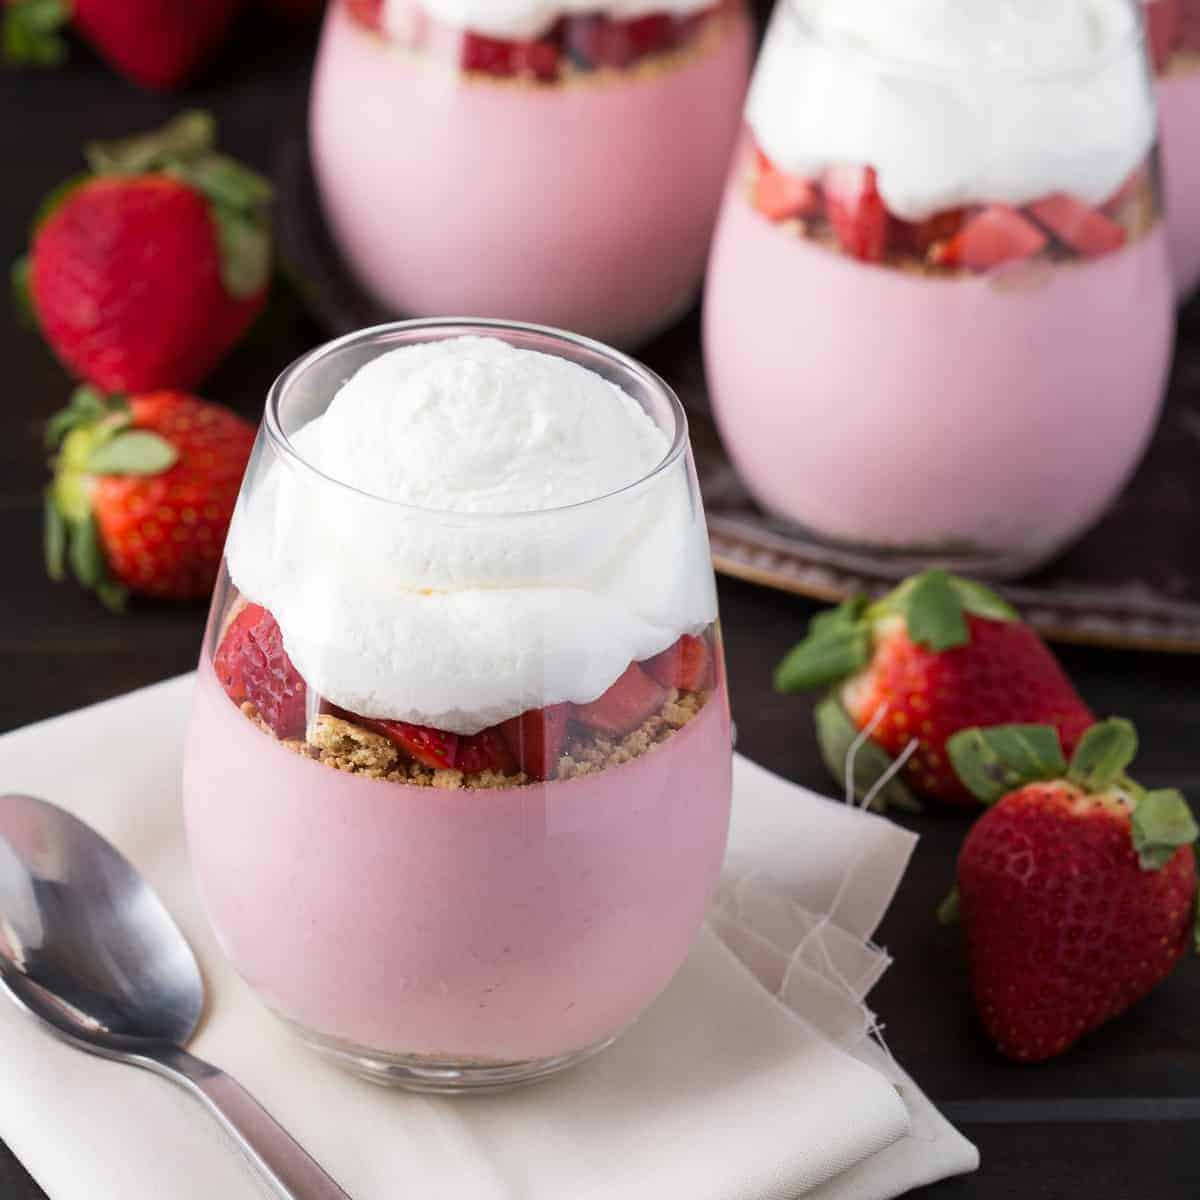 Strawberry cheesecake mousse in glass cups topped with whipped cream.